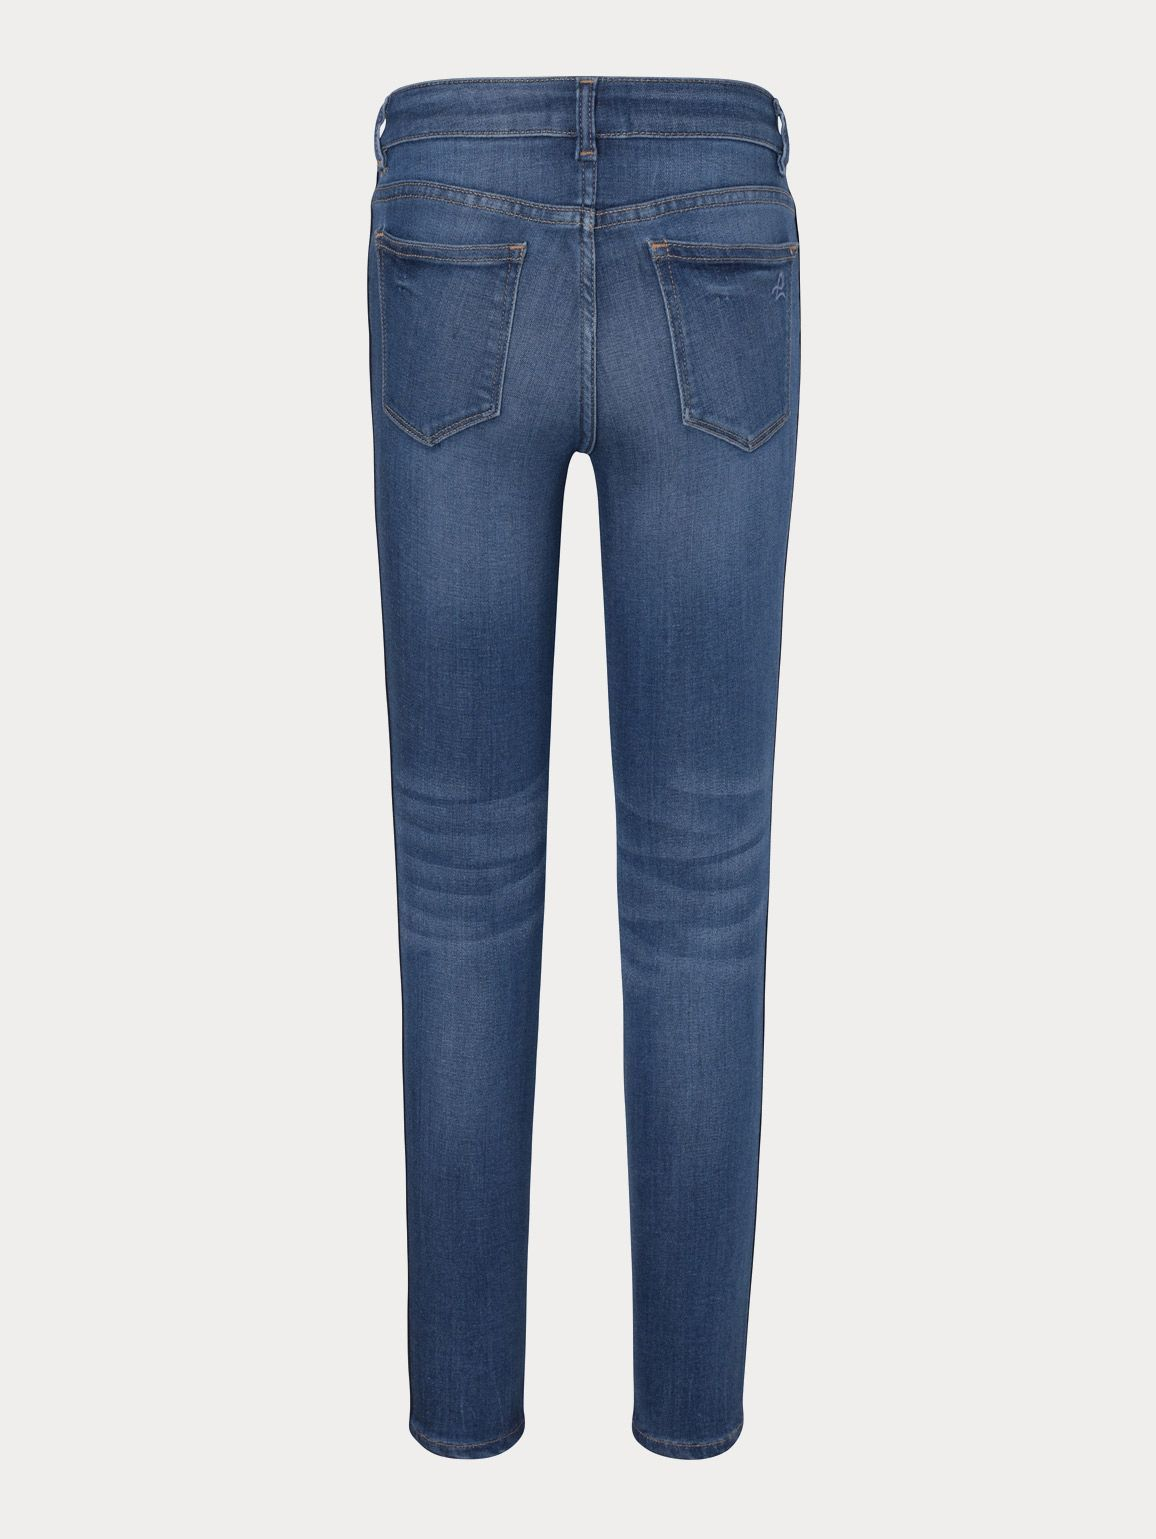 Girls - Chloe Skinny | Moody Blue - DL1961